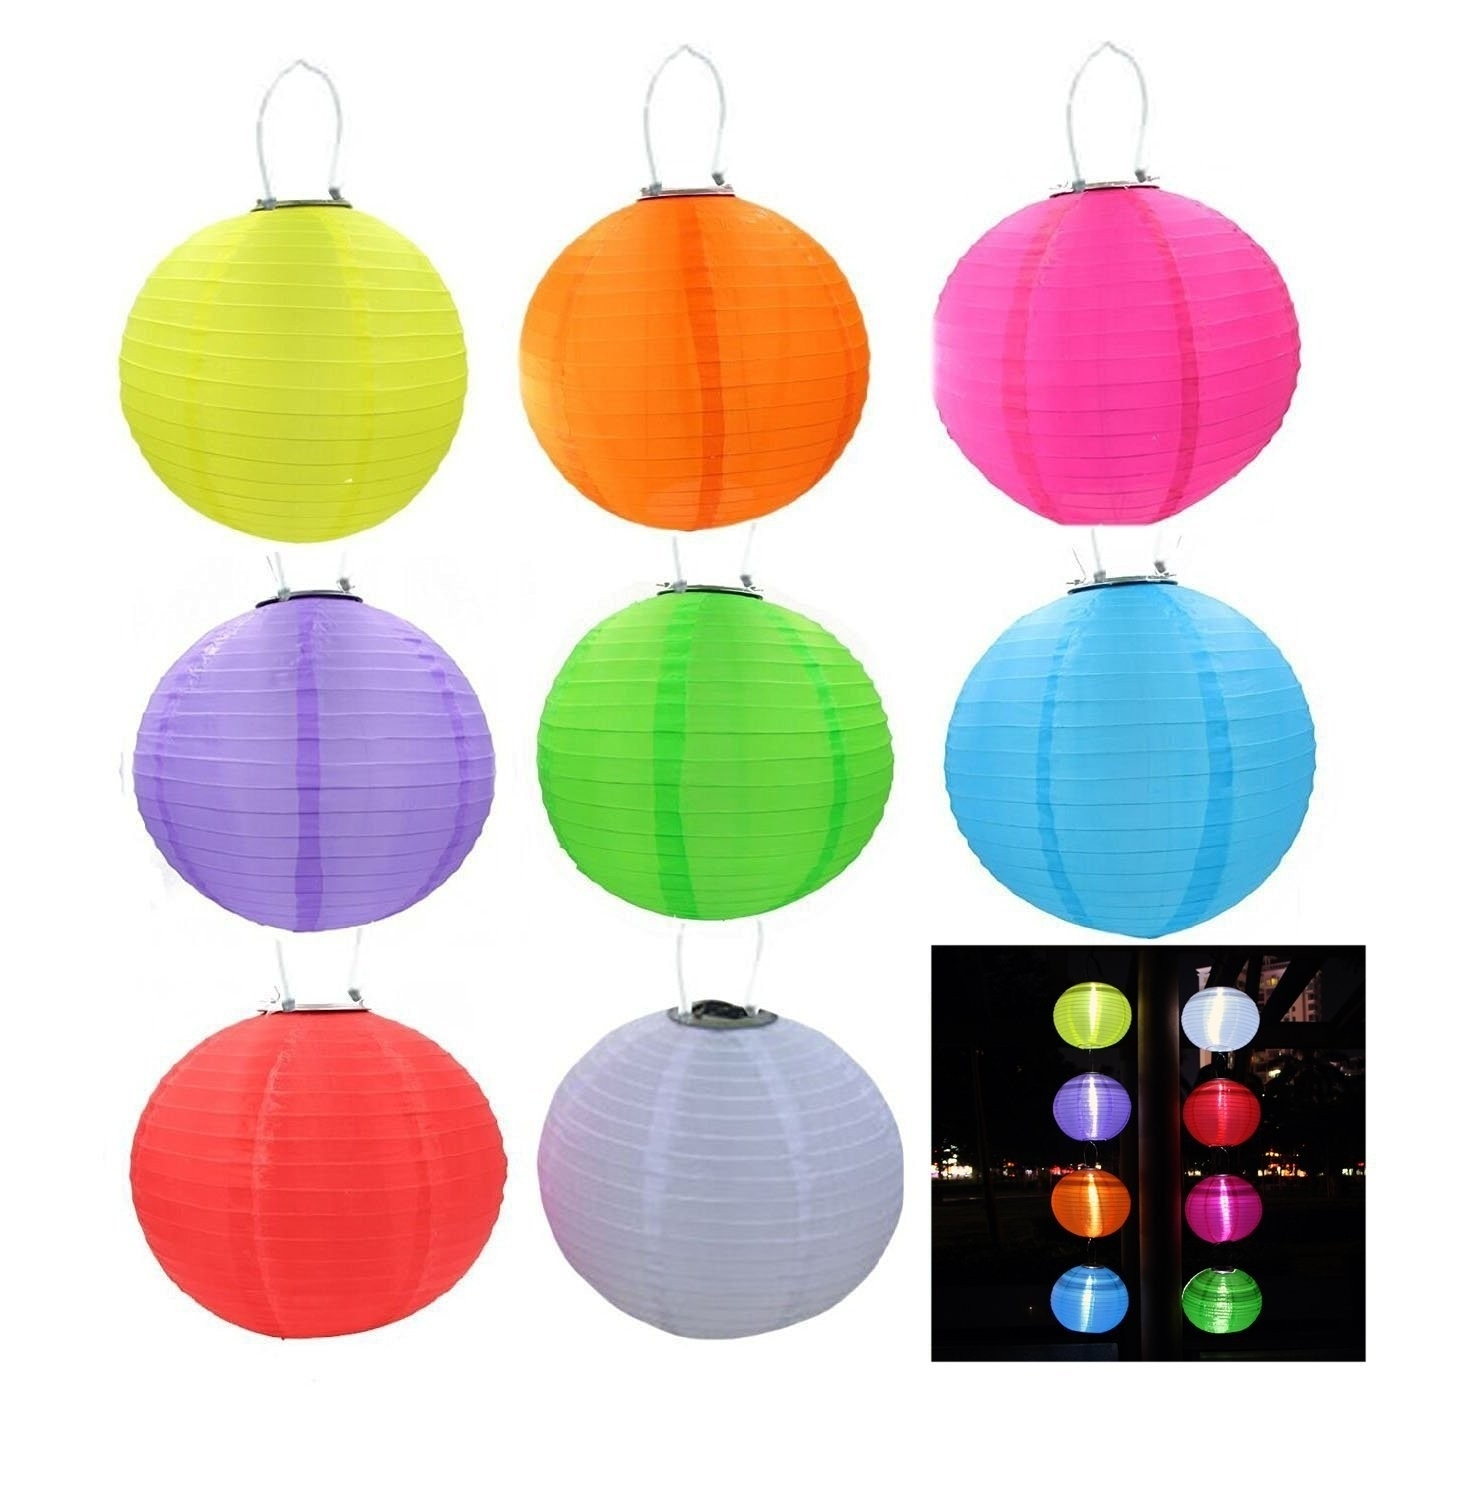 Inspiration about Riorand Solar Lantern Lights Led Outdoor Hanging Lights Waterproof Intended For Outdoor Hanging Chinese Lanterns (#15 of 15)